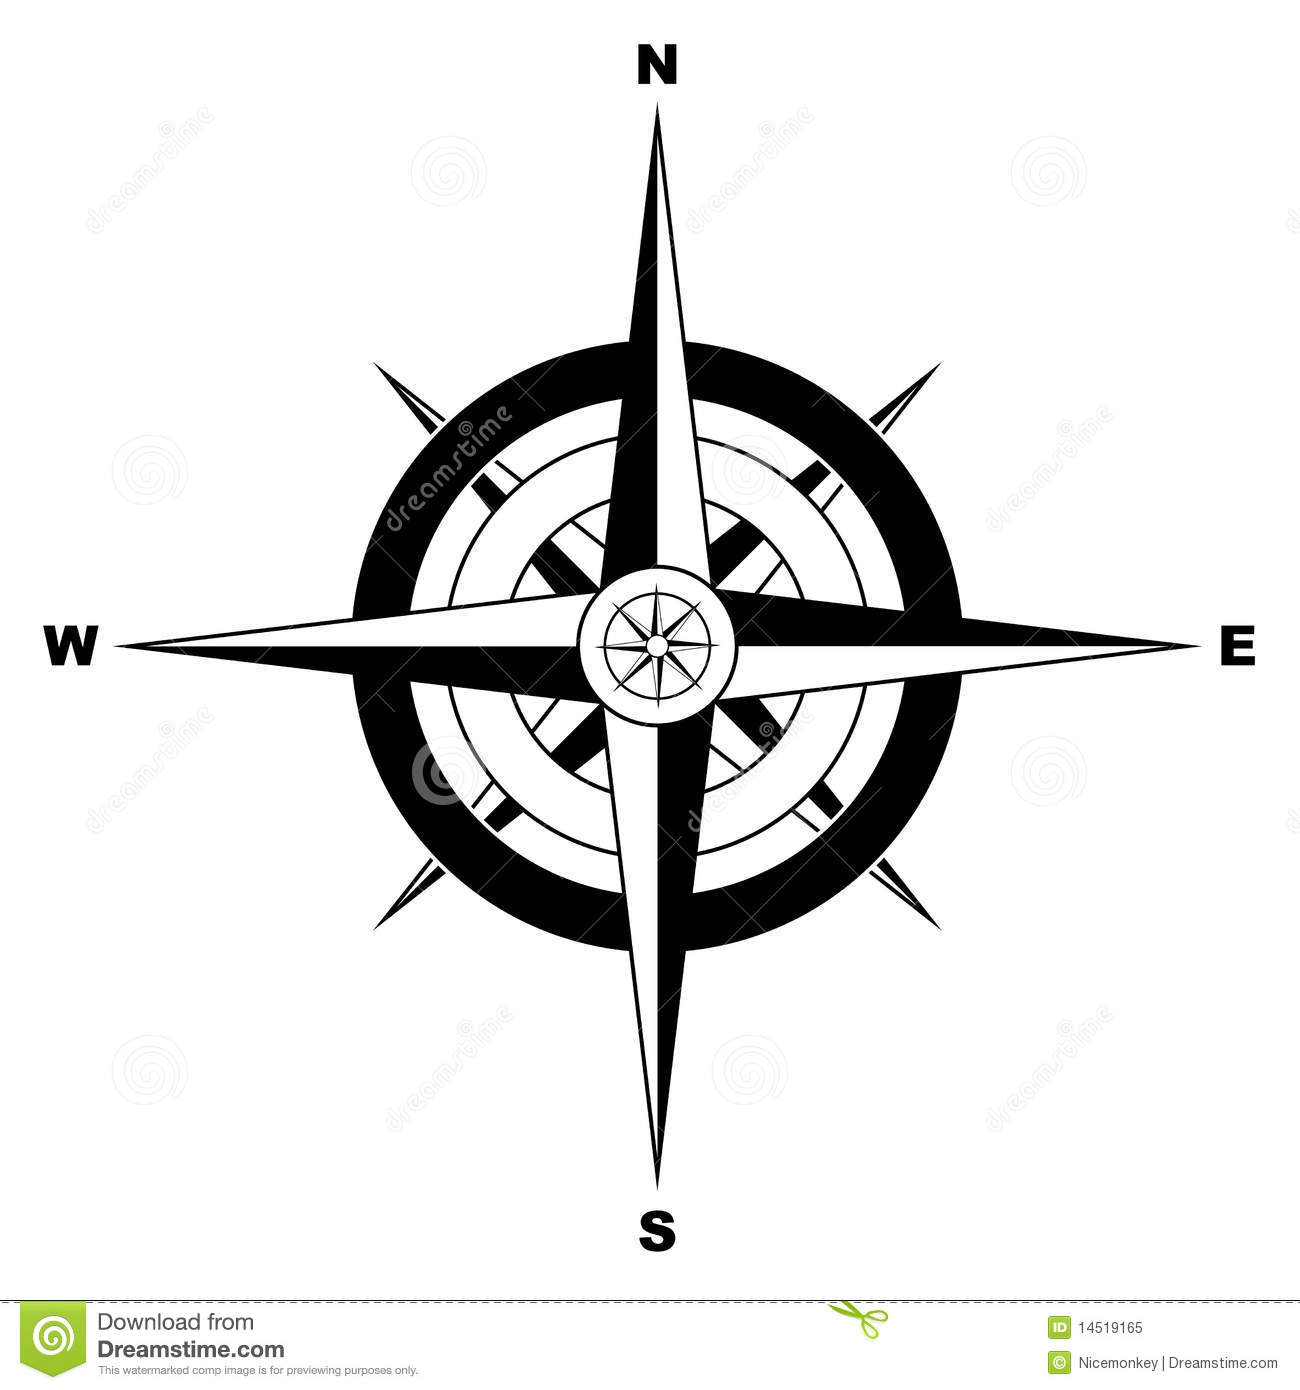 Black and white simple illustrated compass.